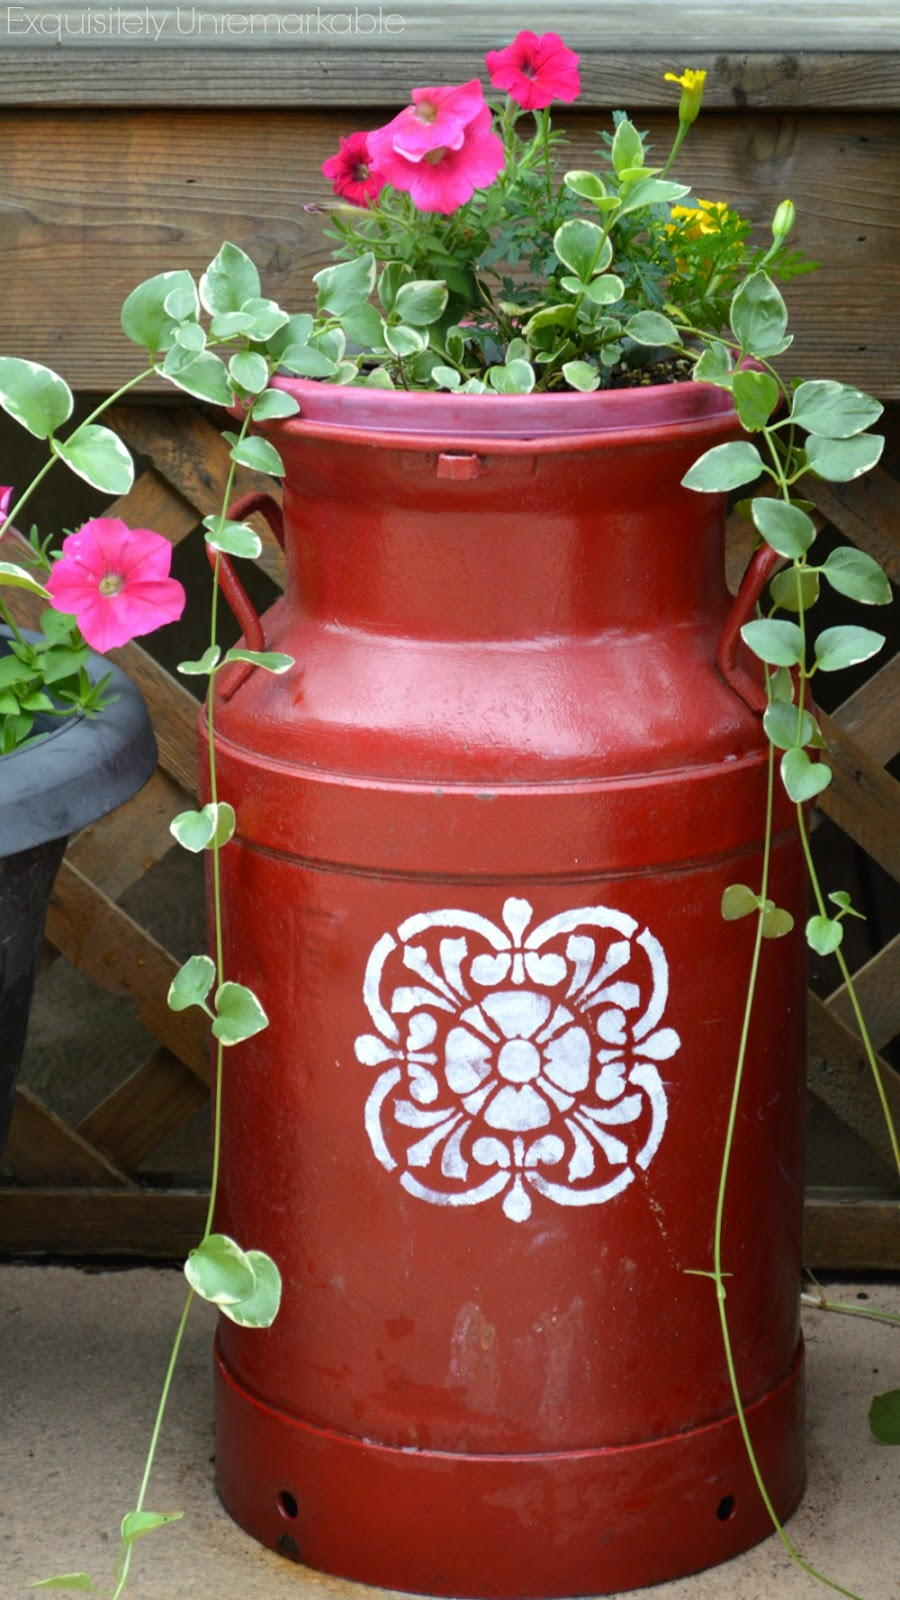 Antique Milk Can Vintage Milk Can Old Milk Cans Milk Jugs Milk Can Decor Painted Milk Cans Garden Fun Garden Planters Planter Ideas Forward decorating using old milk cans.